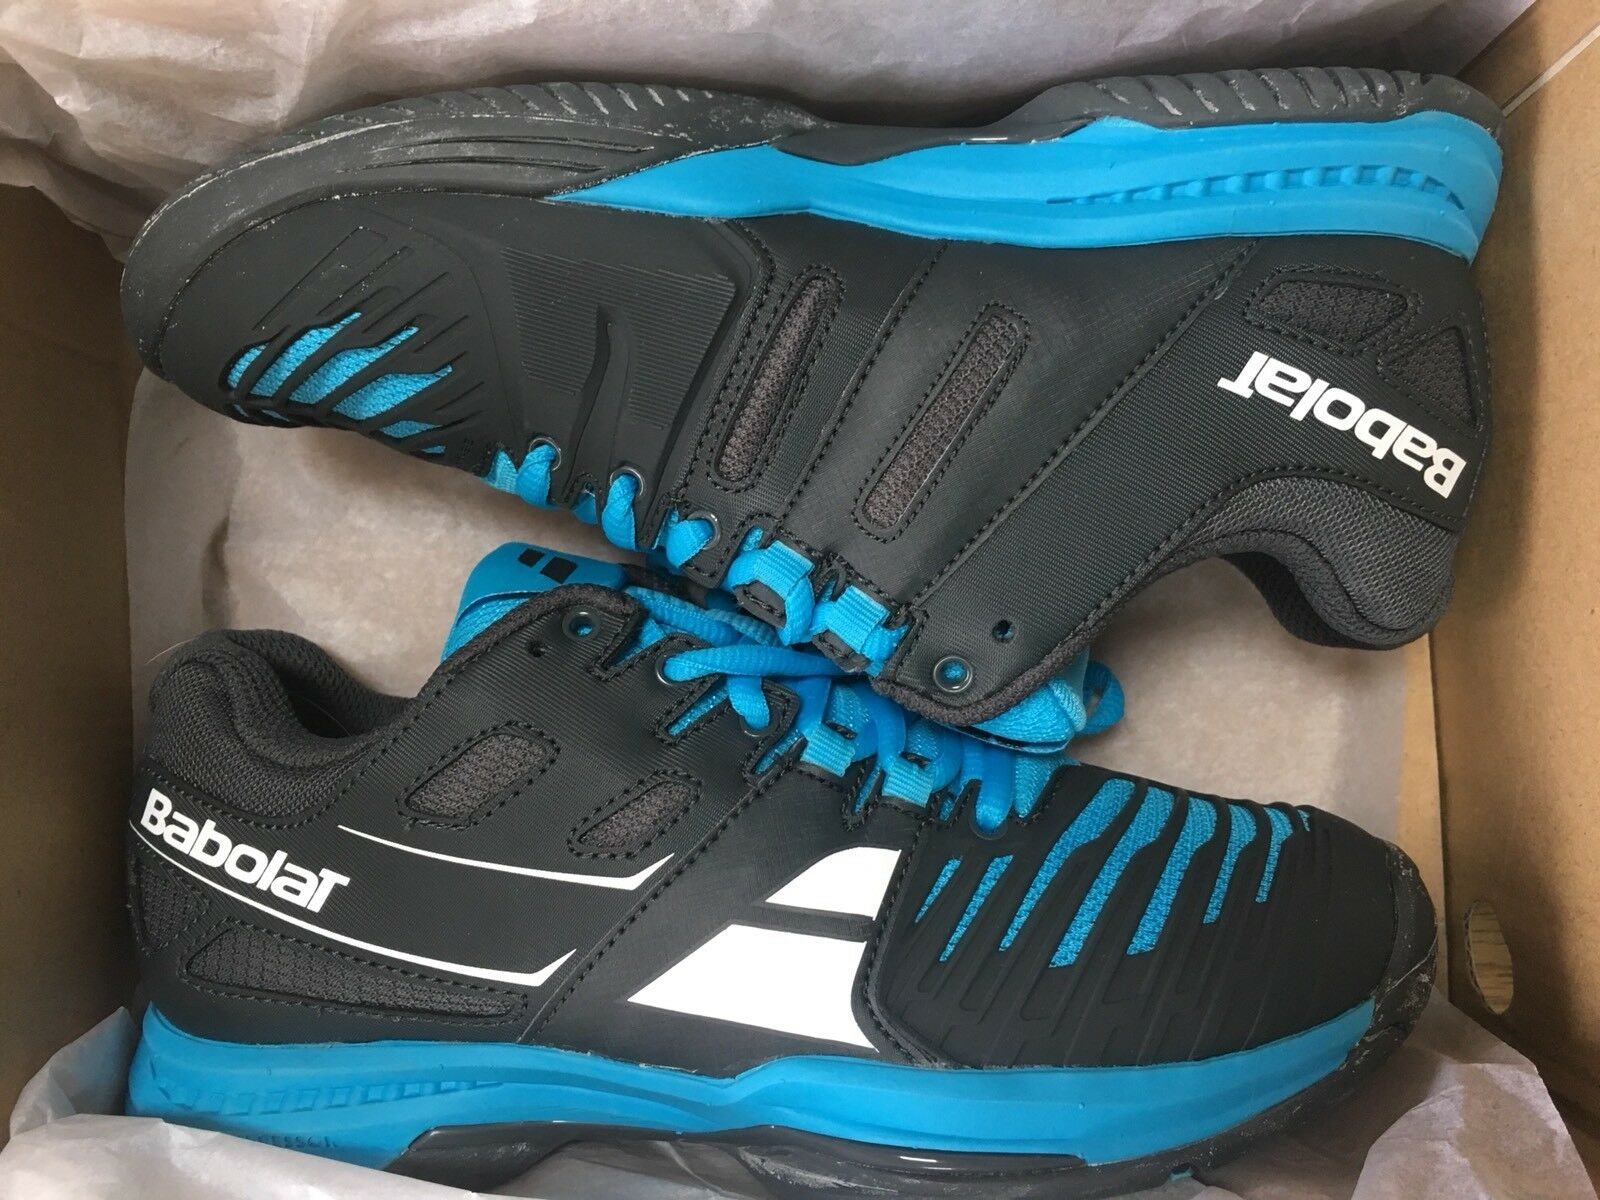 Babolat SFX All Court Trainer, size 4.5, BNIB